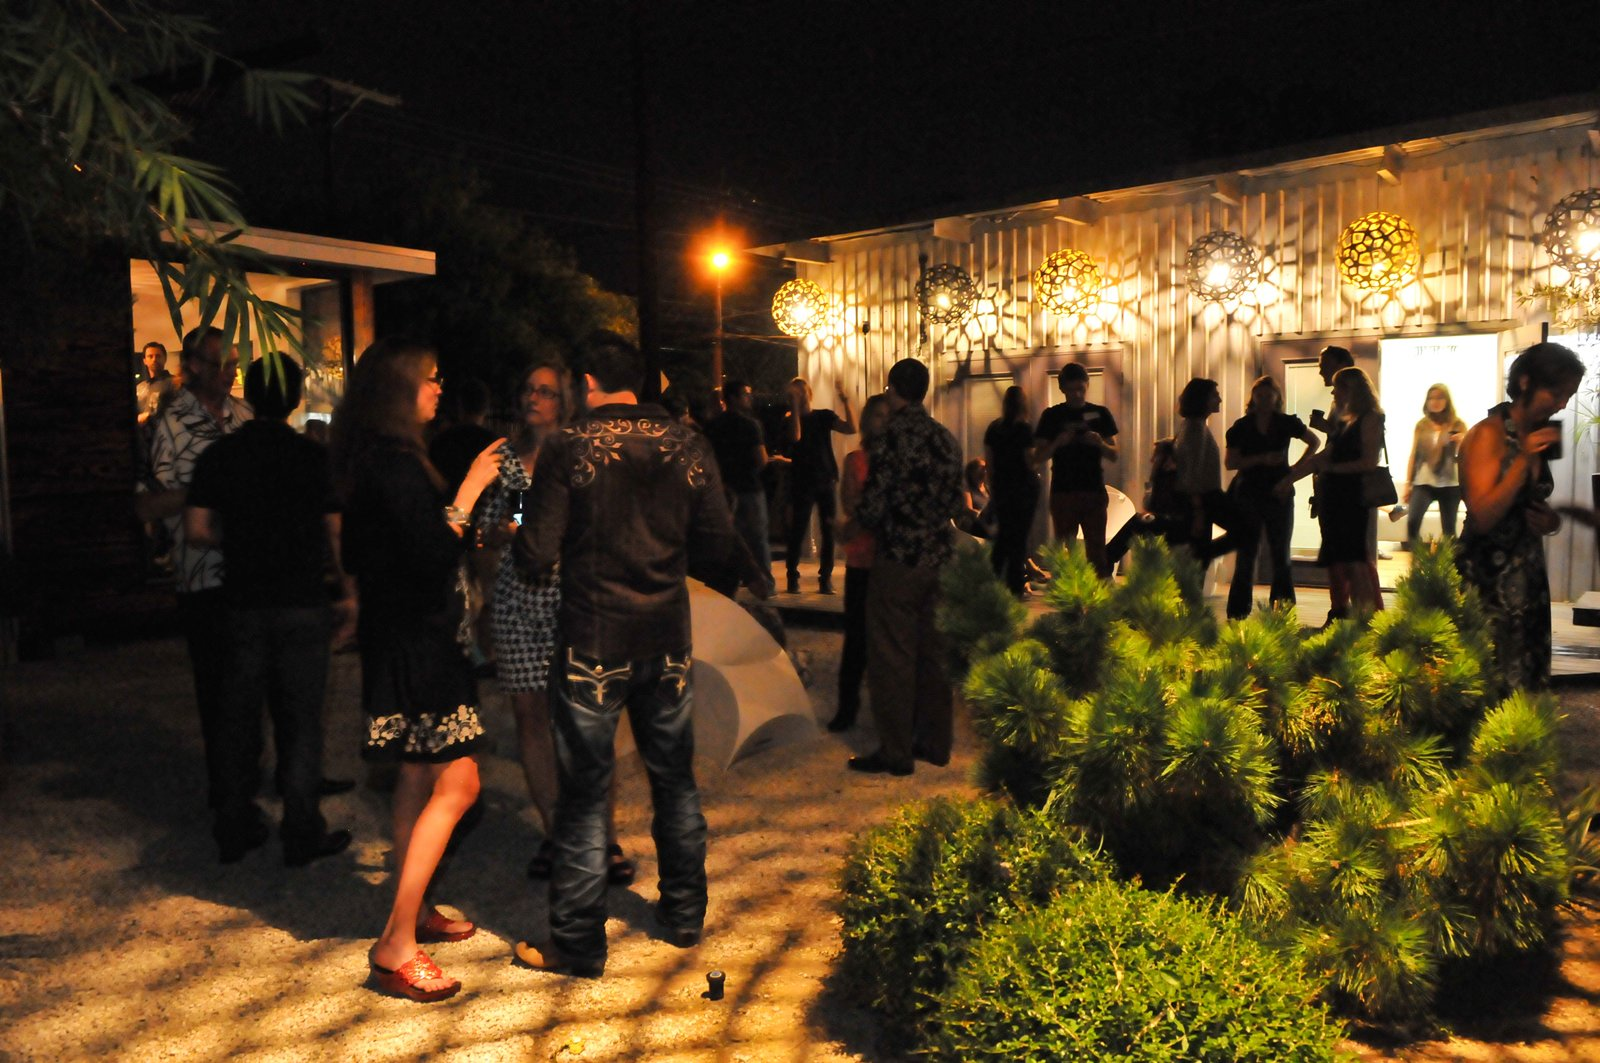 The view from near the DJ booth.  Photo 6 of 20 in Dwell Party Highlights: Celebrating Prefab Design at SXSW Eco